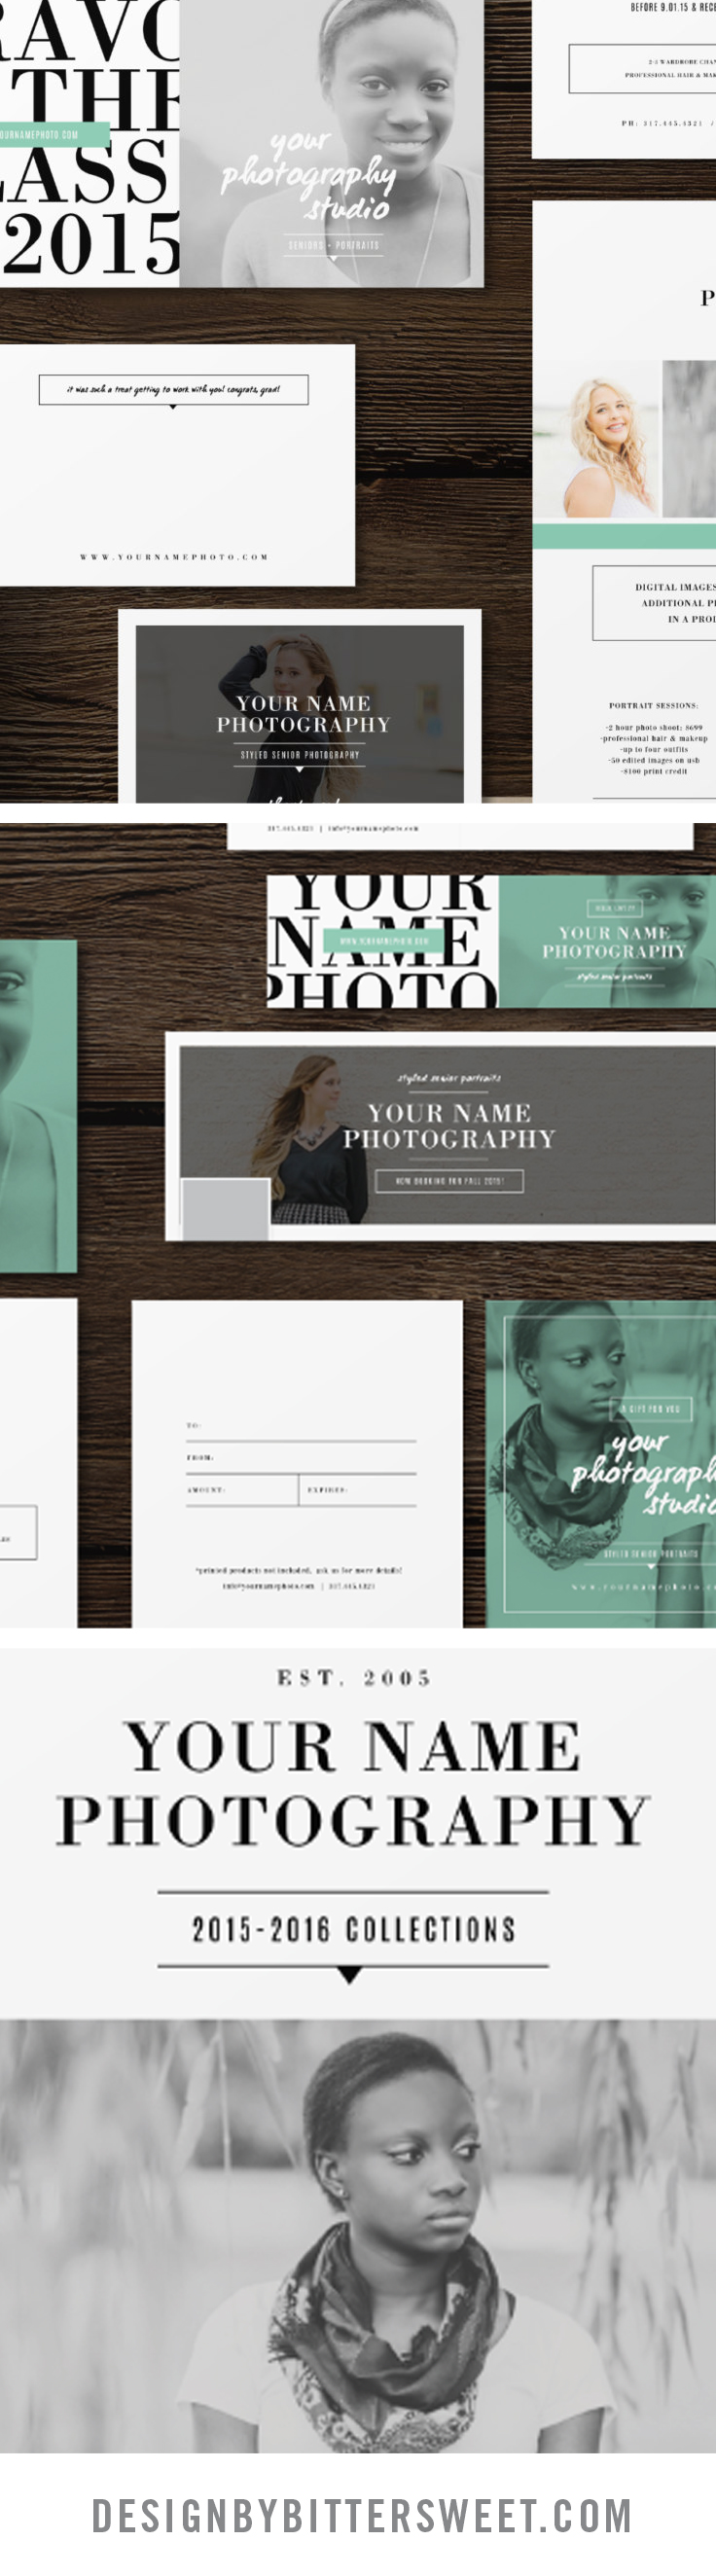 Senior photography marketing templates professional photographer senior photography marketing templates professional photographer branding materials pricing guides graduation announcements business cards reheart Image collections